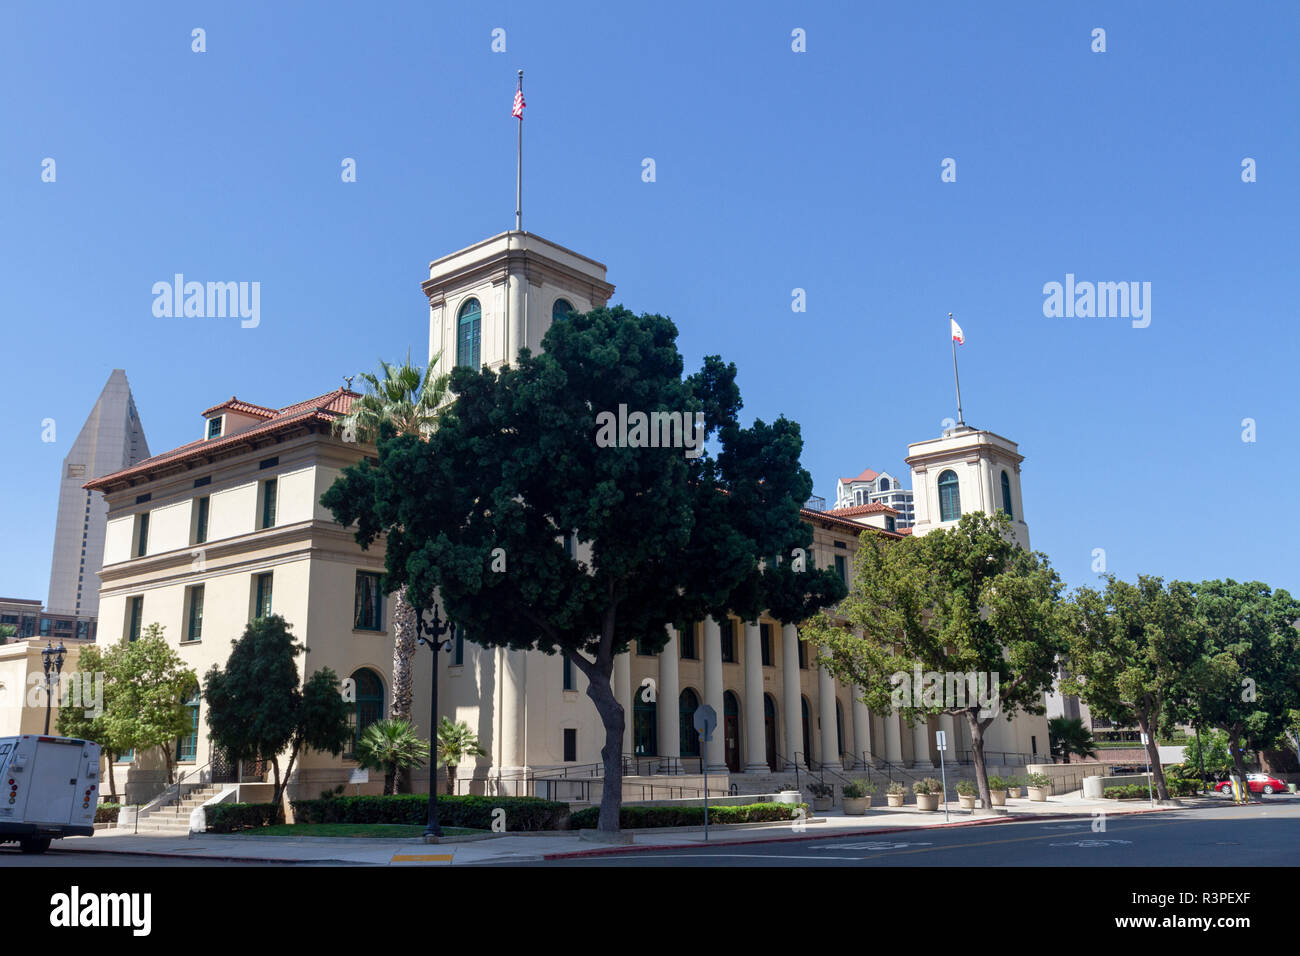 The Jacob Weinberger United States Courthouse (bankruptcy court) in San Diego, California, United States, - Stock Image